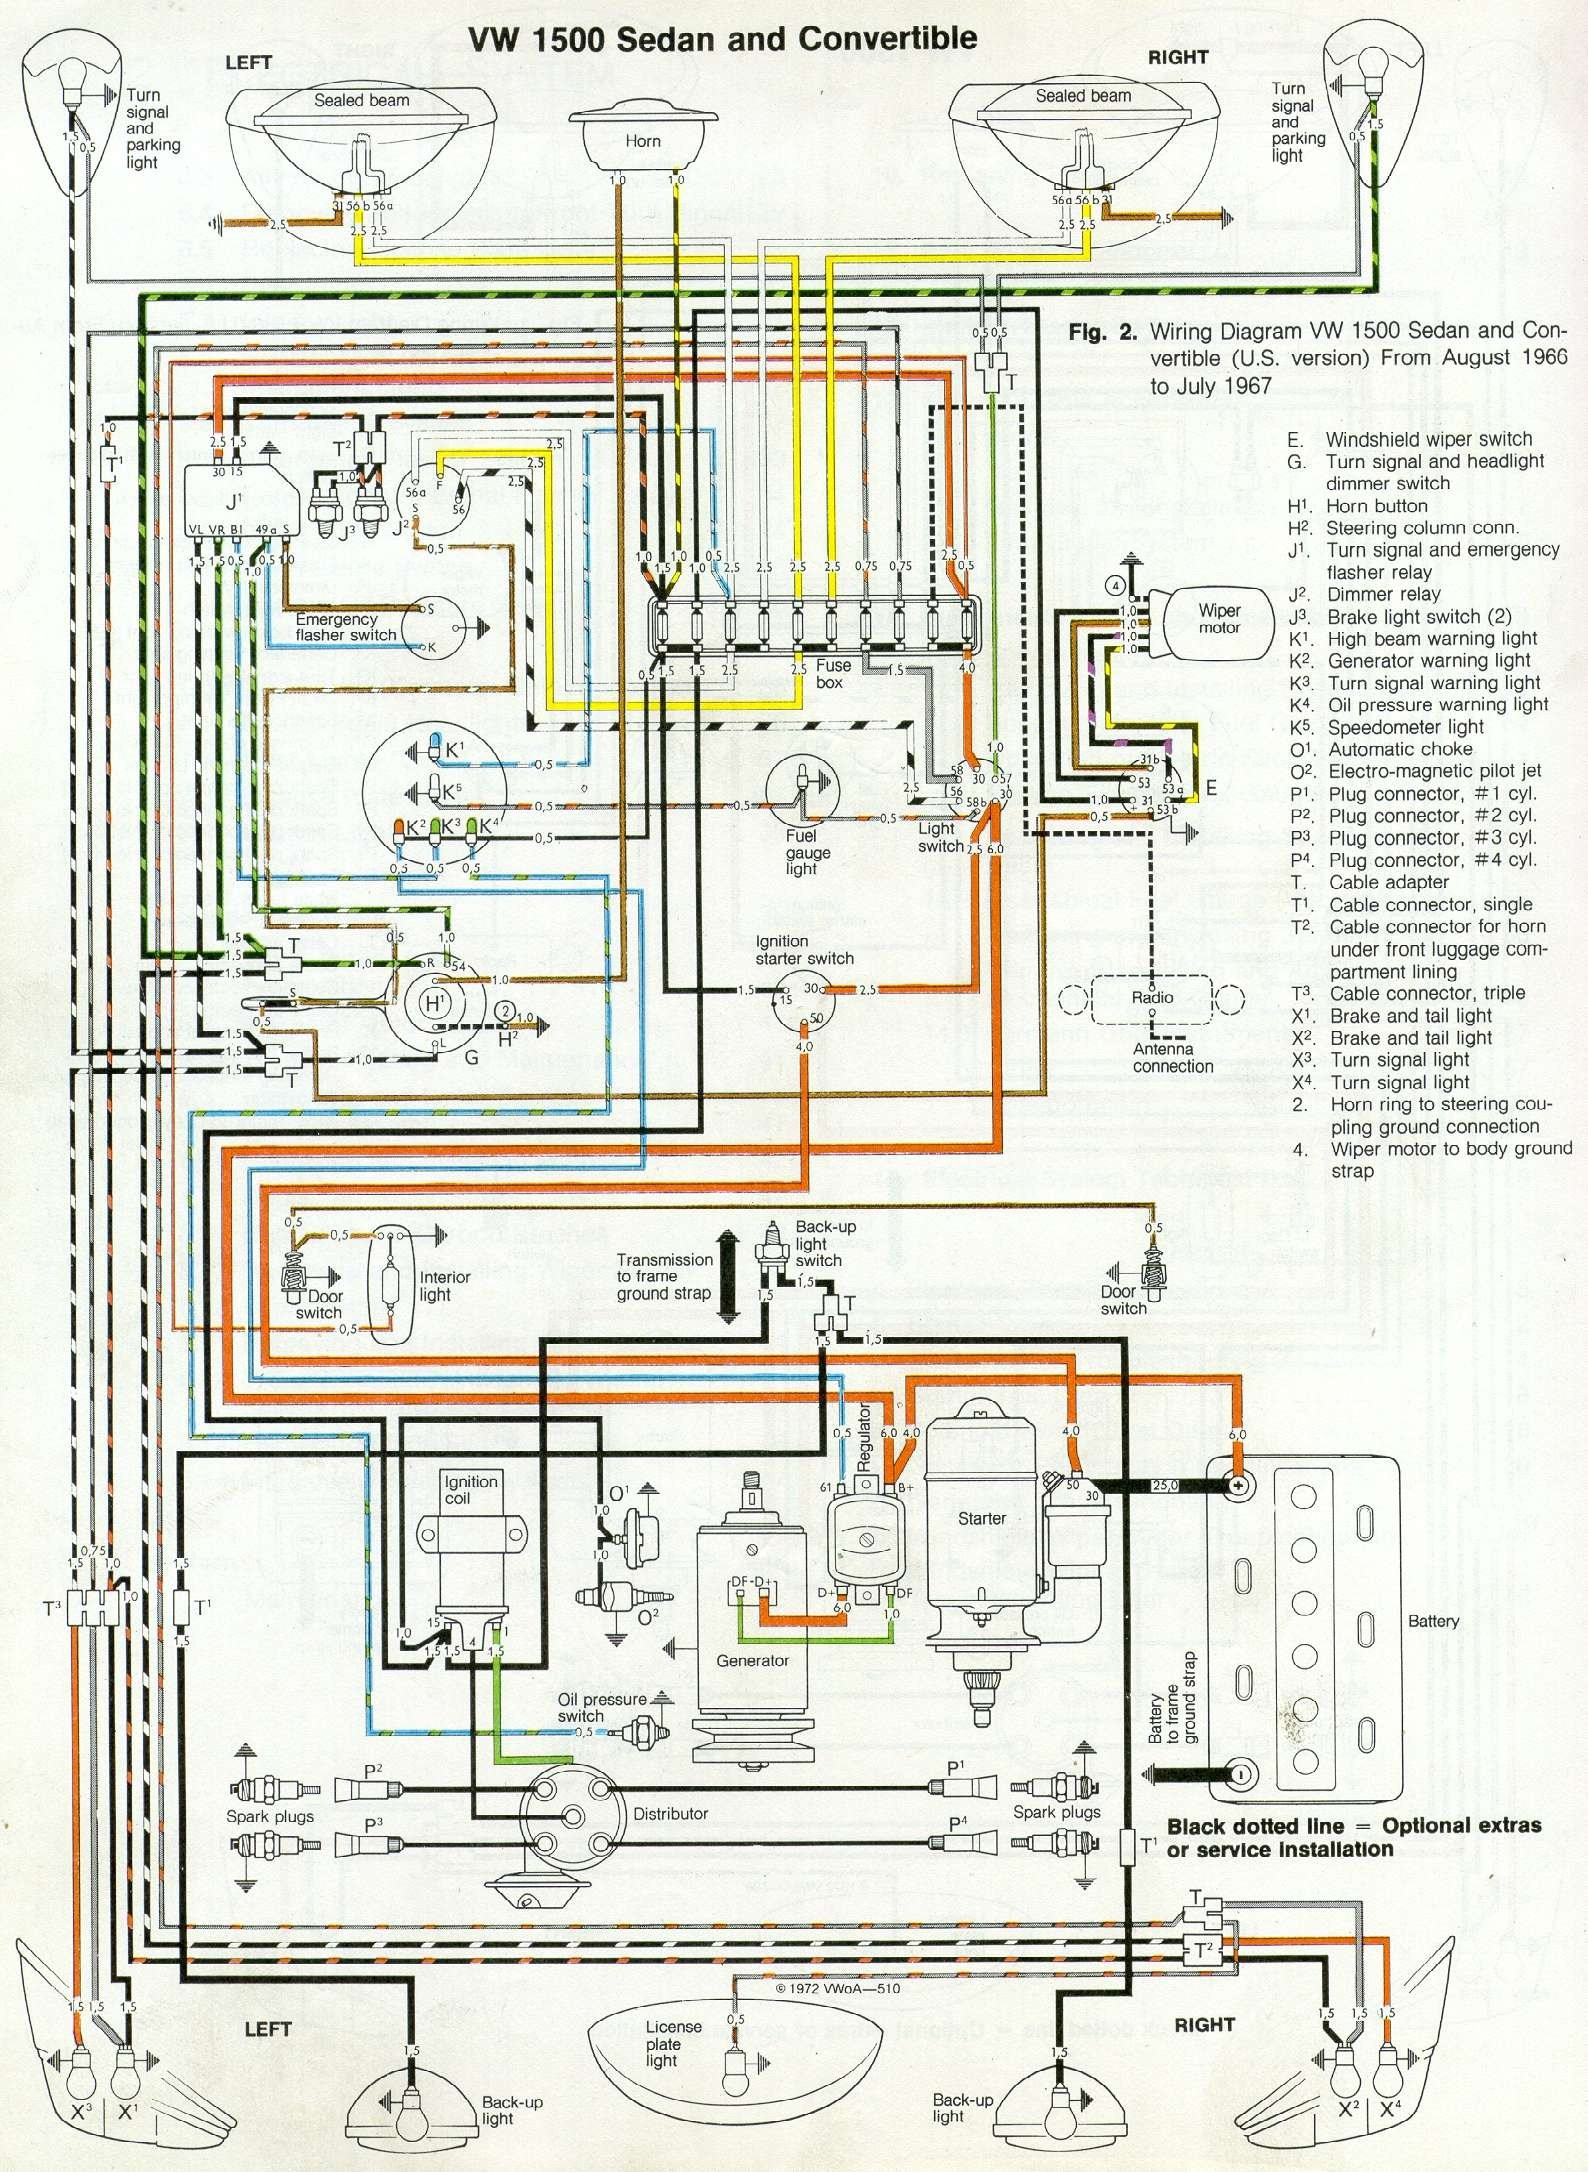 VW Beetle Wiring Digram vw beetle diagram vw beetle timing belt marks \u2022 wiring diagrams 1965 VW Beetle Wiring Diagram at soozxer.org